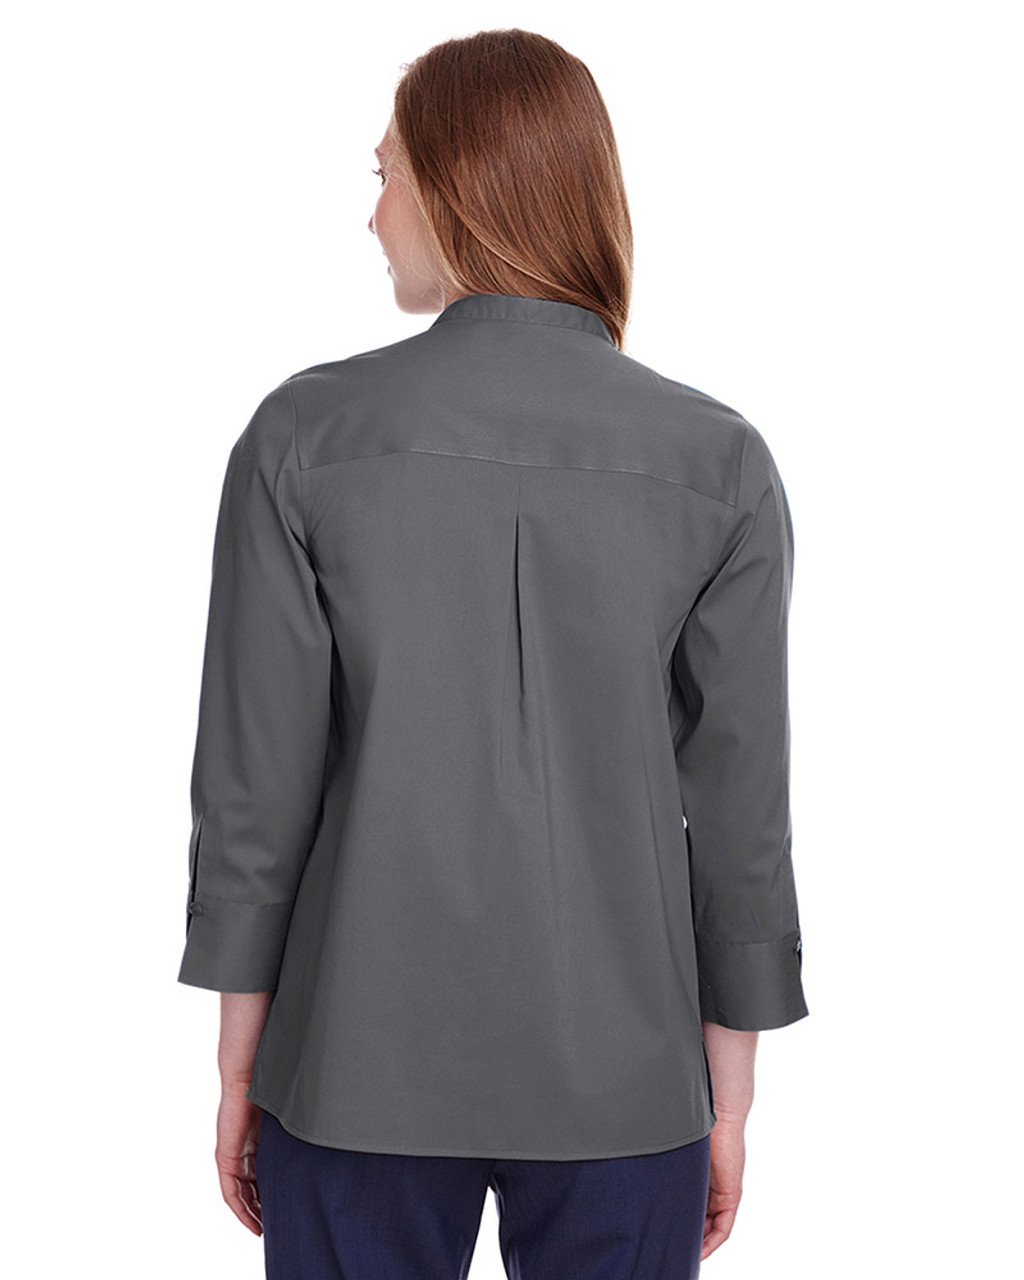 Graphite - back, DG560W Devon & Jones Ladies' Crown Collection™ Stretch Broadcloth 3/4 Sleeve Blouse | Blankclothing.ca